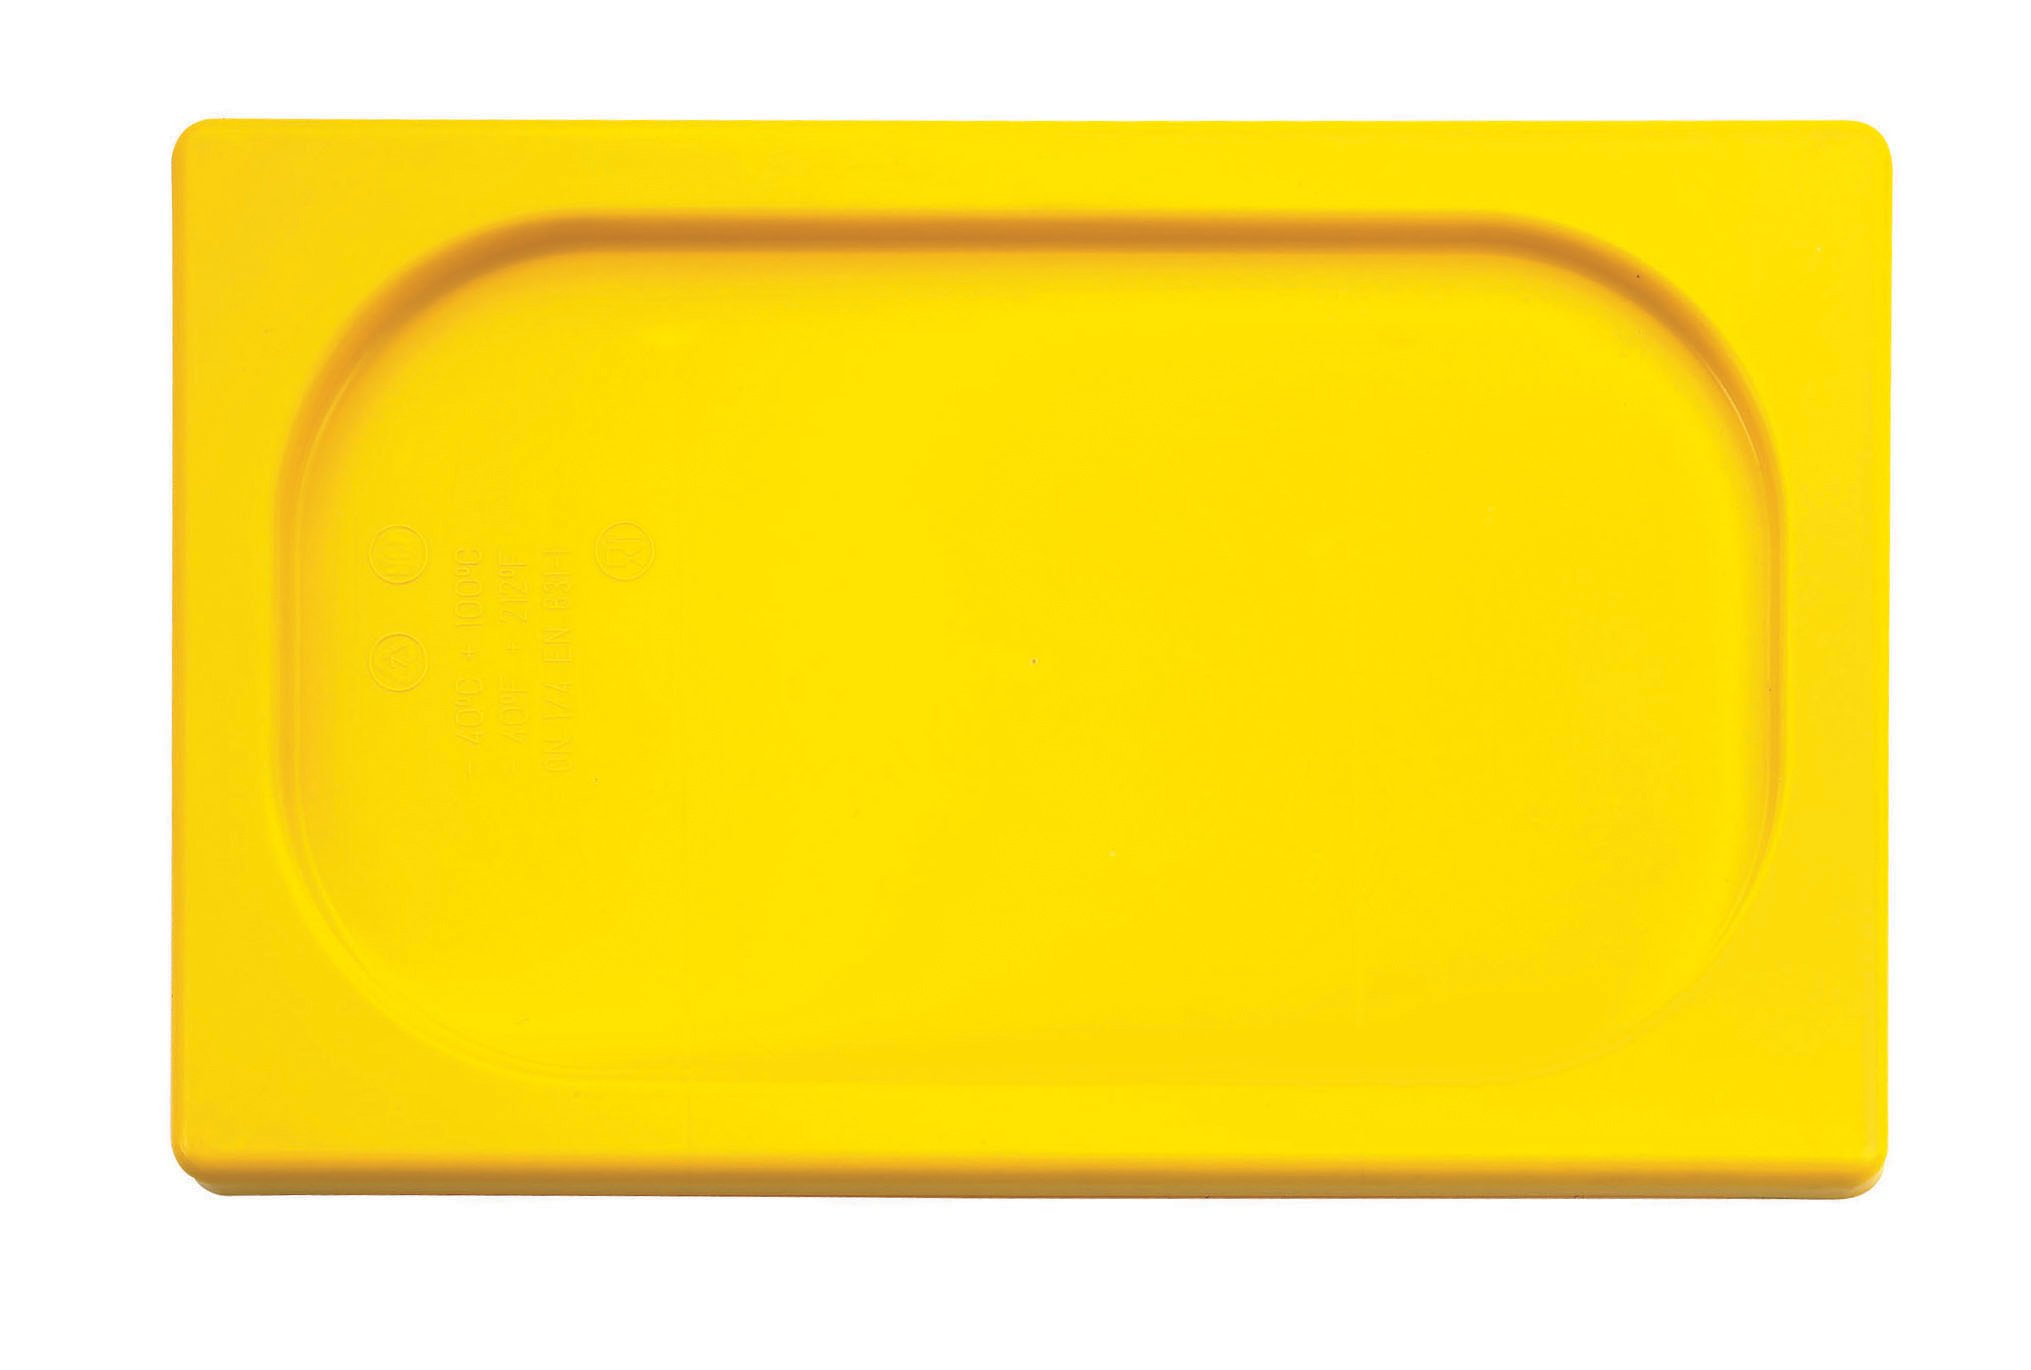 Paderno World Cuisine 20 7/8 inches by 12 3/4 inches Yellow Polypropylene Hotel Food Pan Lid - 1/1